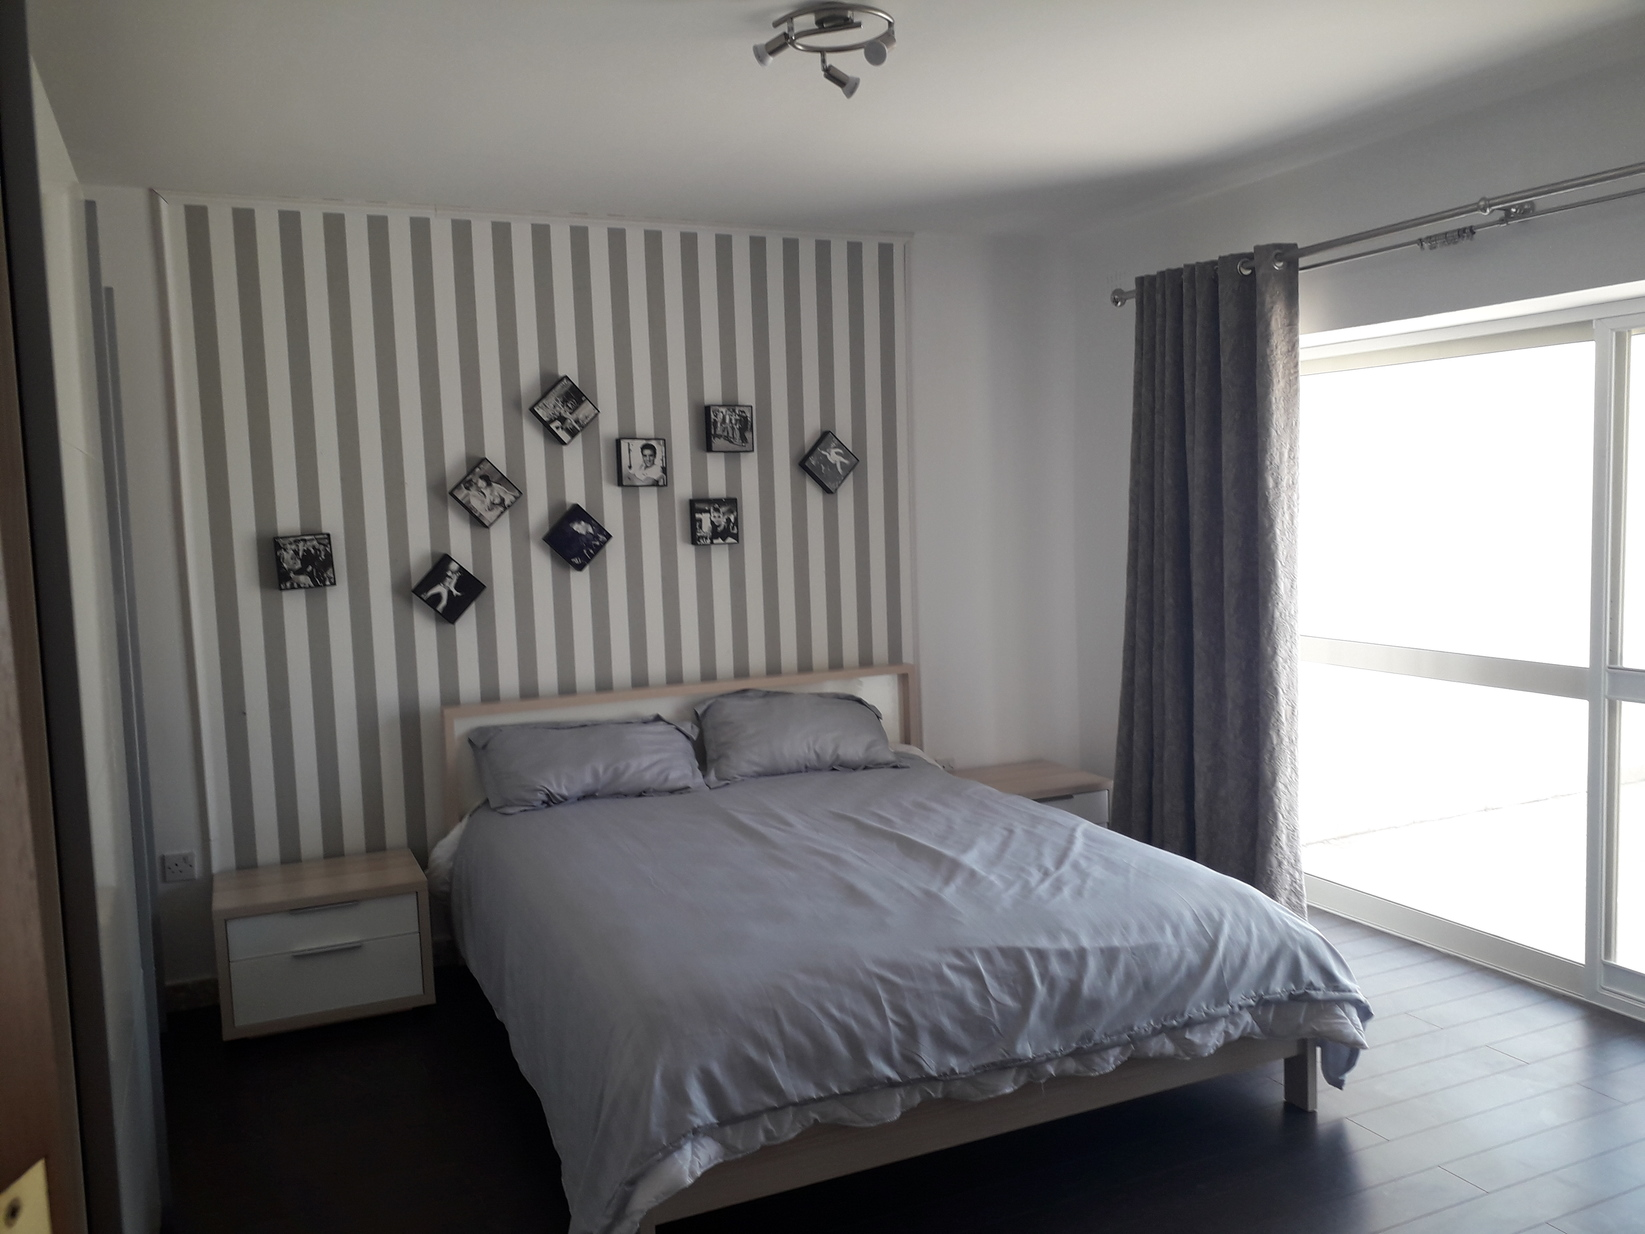 4 bed Penthouse For Sale in Sliema, Sliema - thumb 10